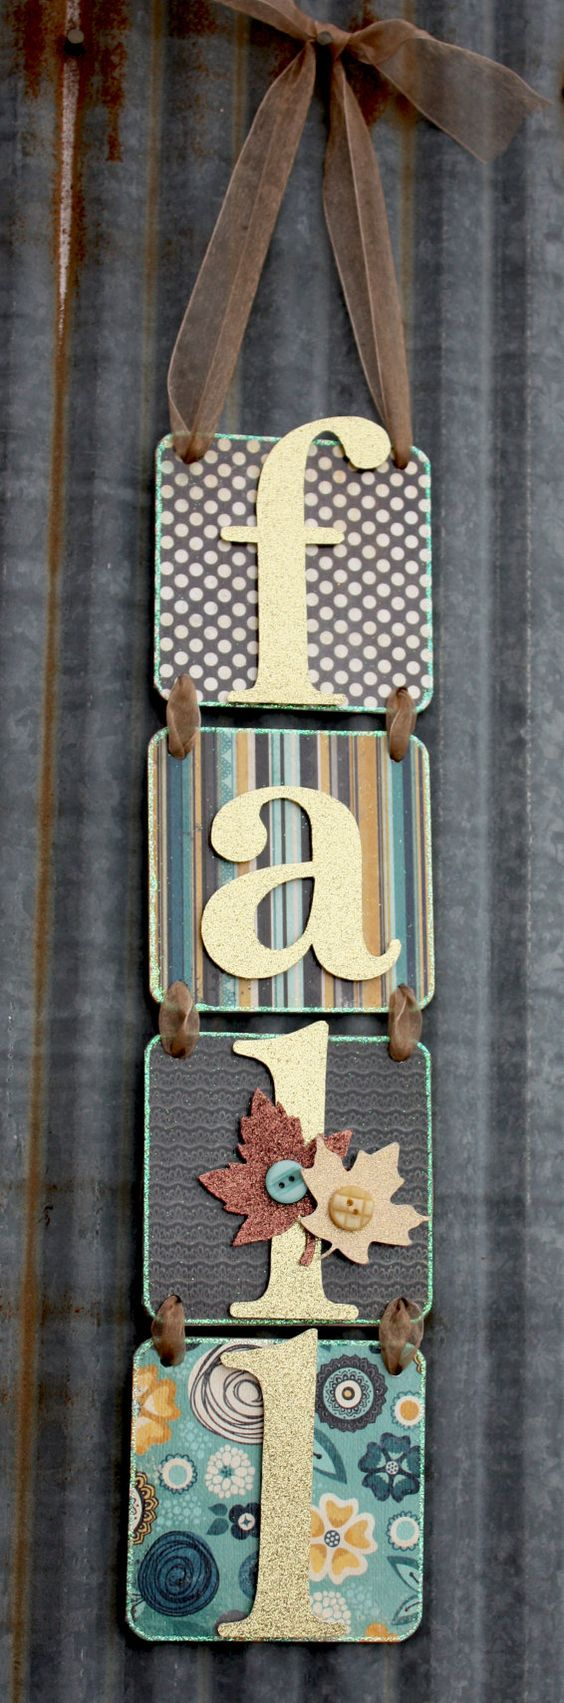 31 Cute And Simple Fall Door D 233 Cor Ideas Shelterness